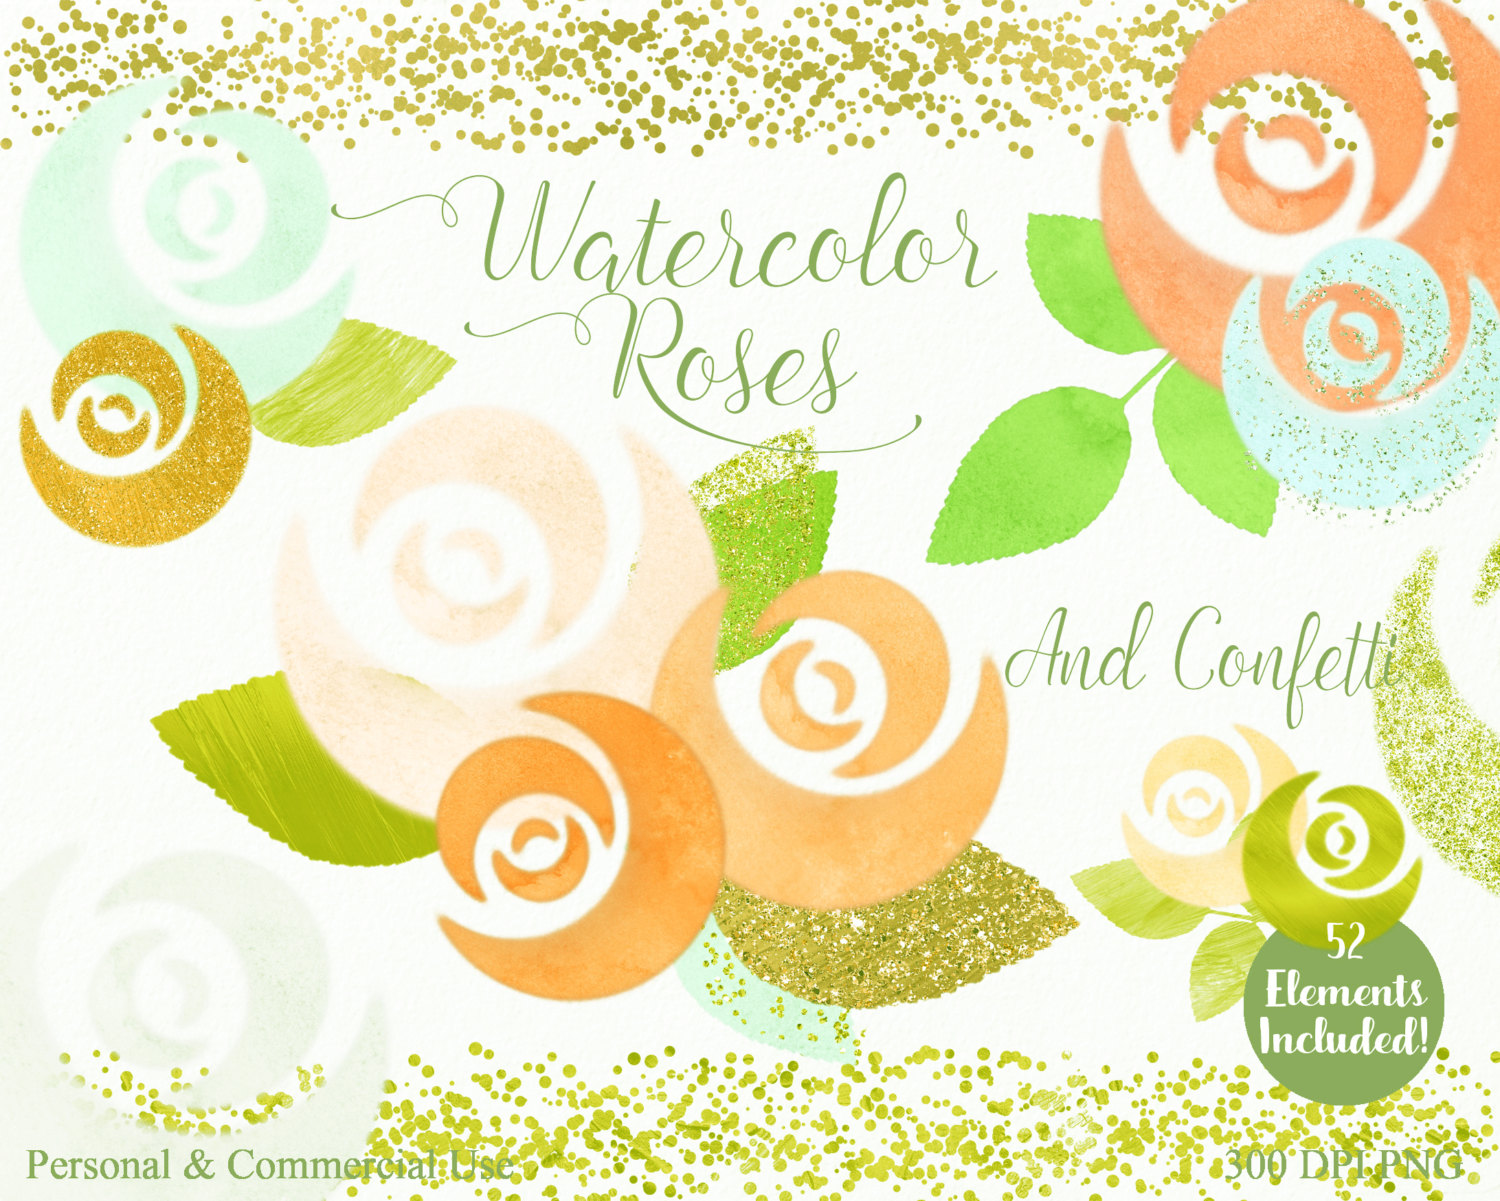 Yellow Rose clipart gold element Use WATERCOLOR Floral Coral